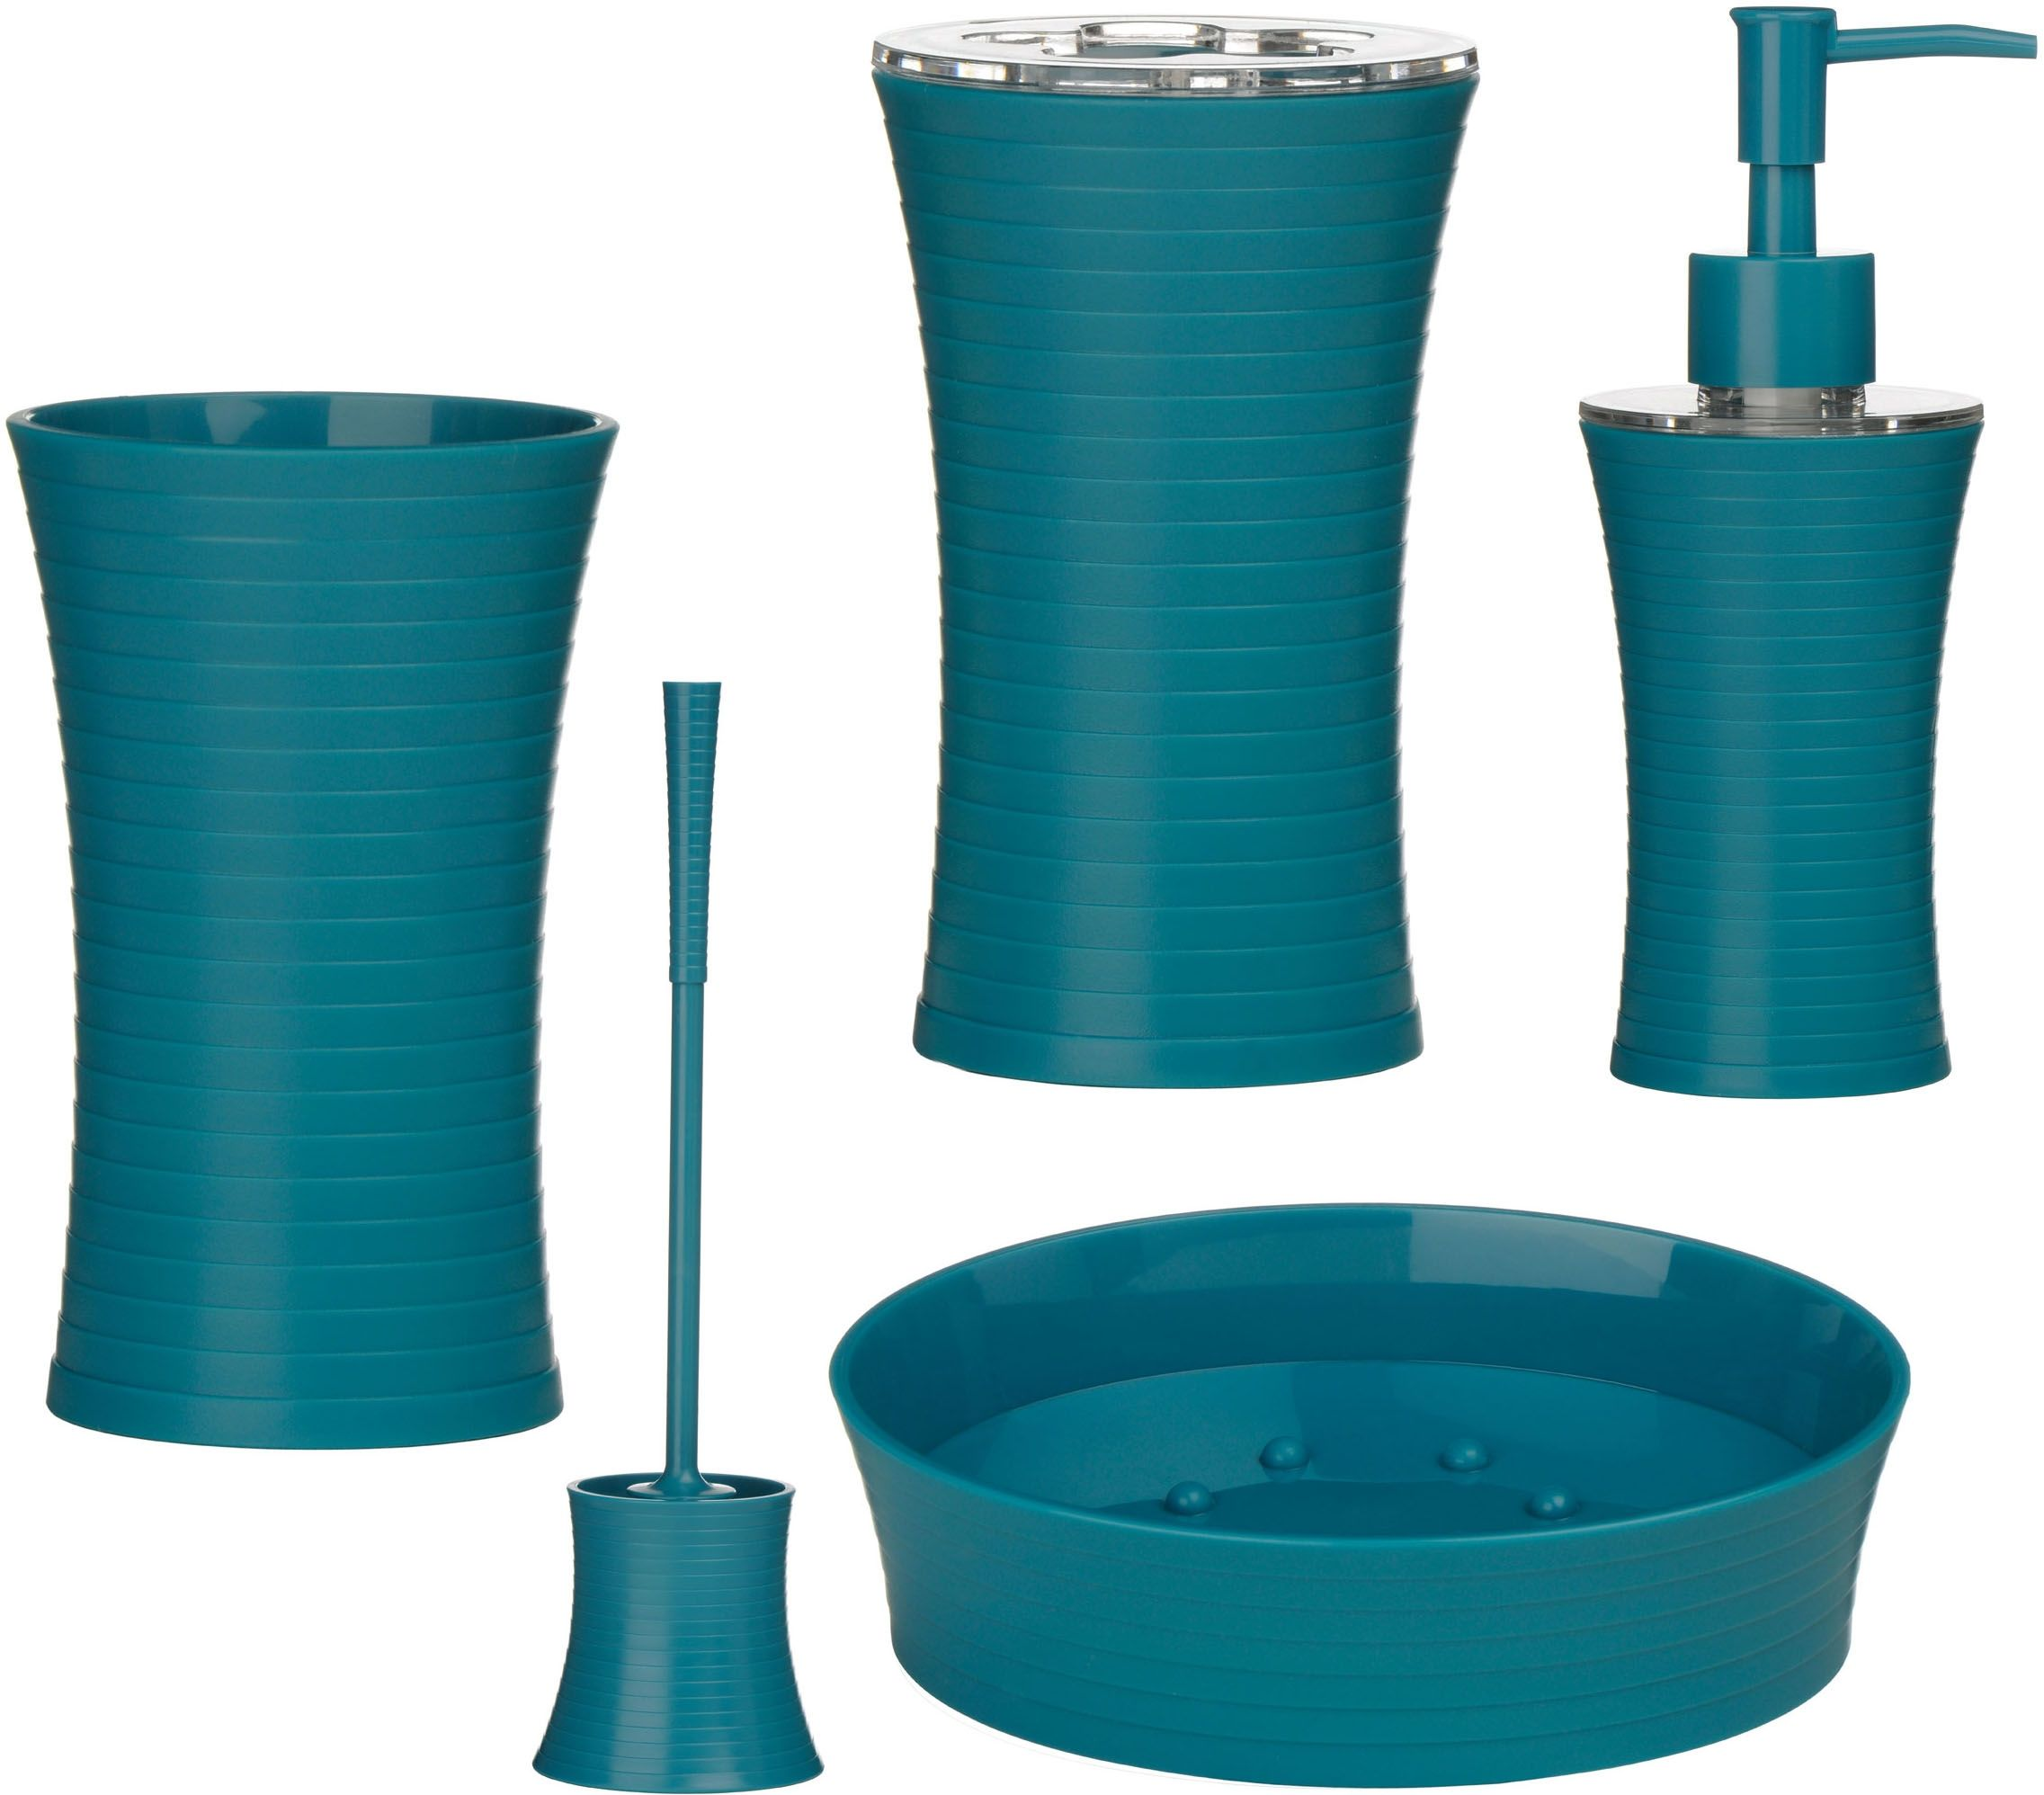 Bon Bathroom Accessories Set Teal